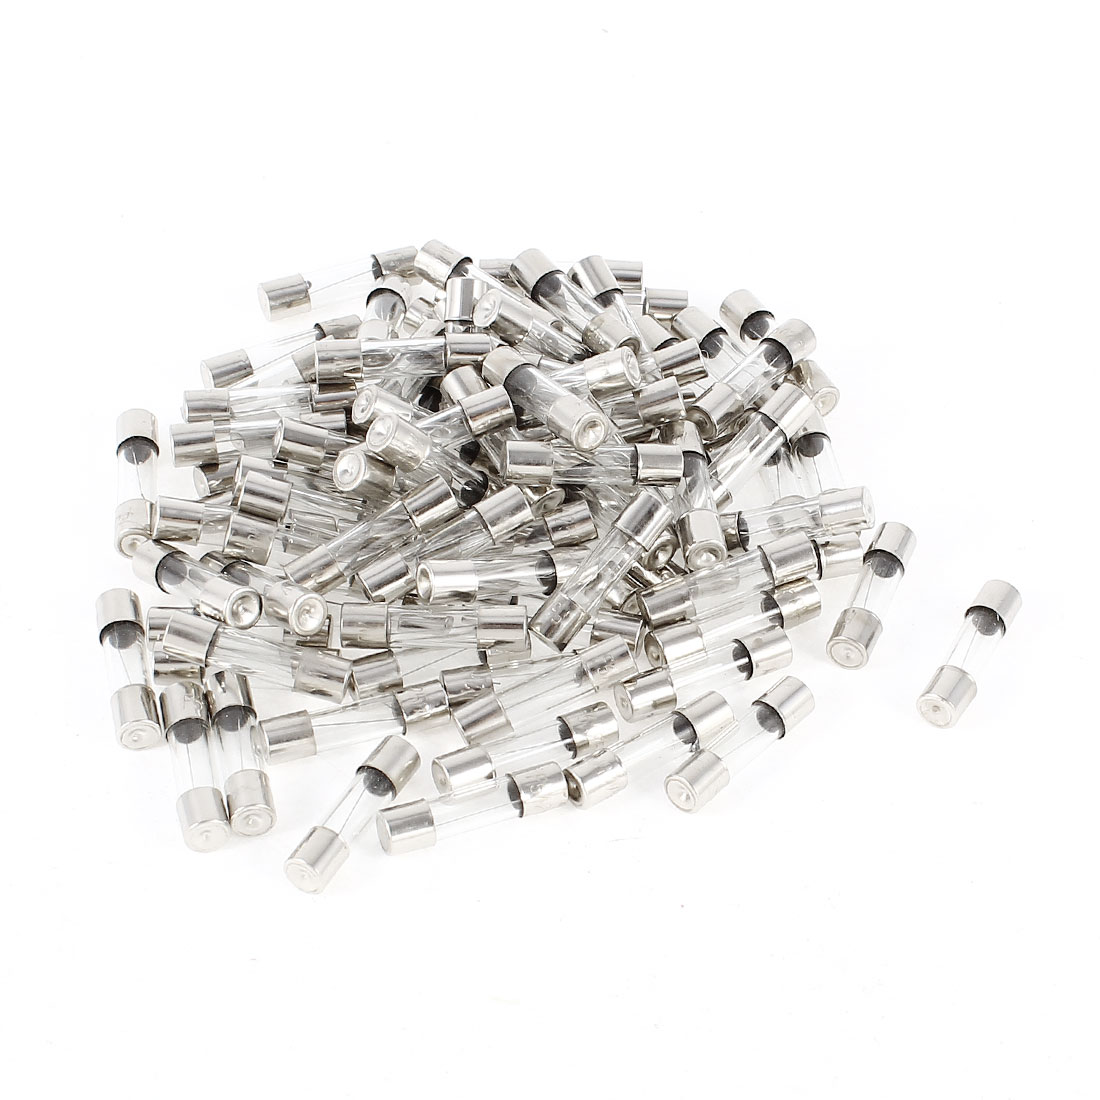 AC 250V 6Amp Fast Acting 5mmx20mm Glass Tube Fuses 100 Pcs